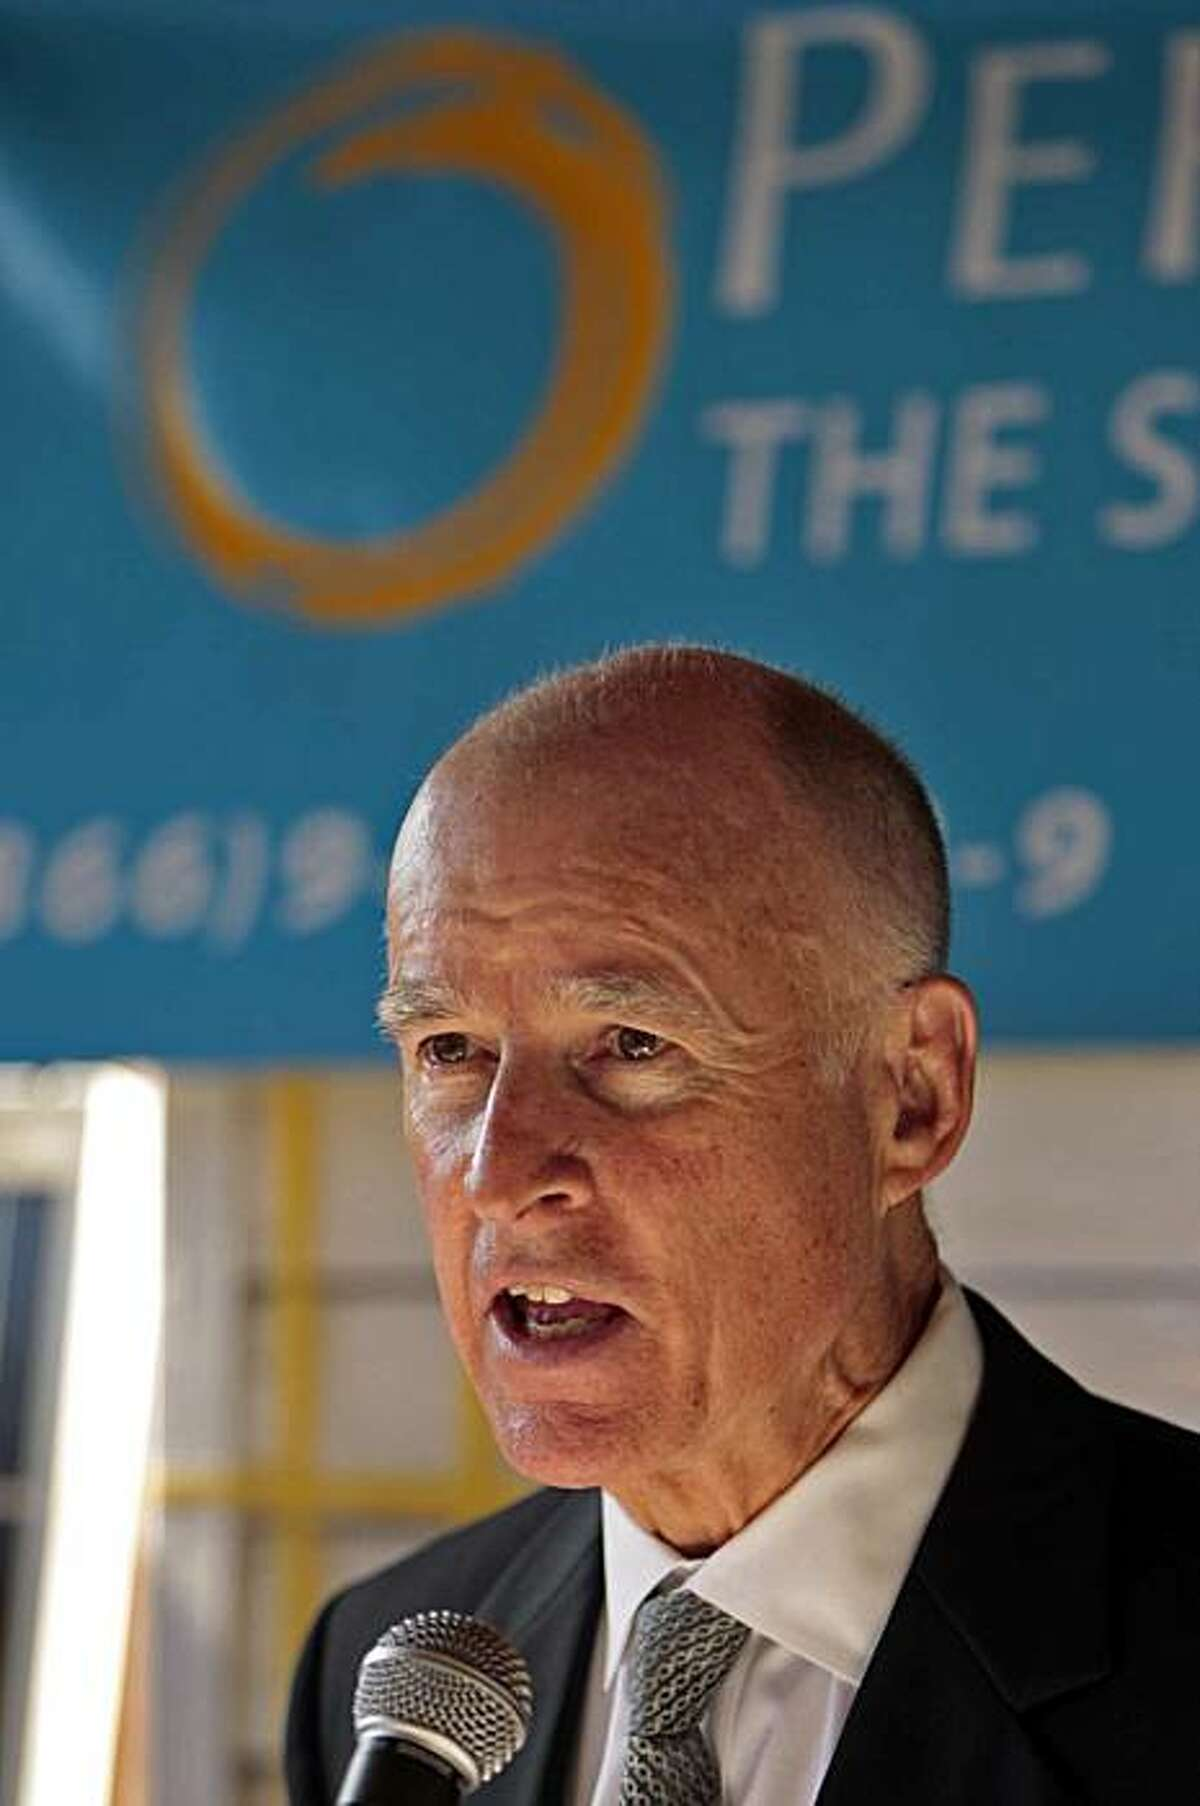 Attorney General Jerry Brown, Democratic gubernatorial candidate, speaks to a crowd during a news conference, September 20, 2010, at PermaCity Solar, Inc., a Los Angeles Mid-City business. (Al Seib/Los Angeles Times/MCT)